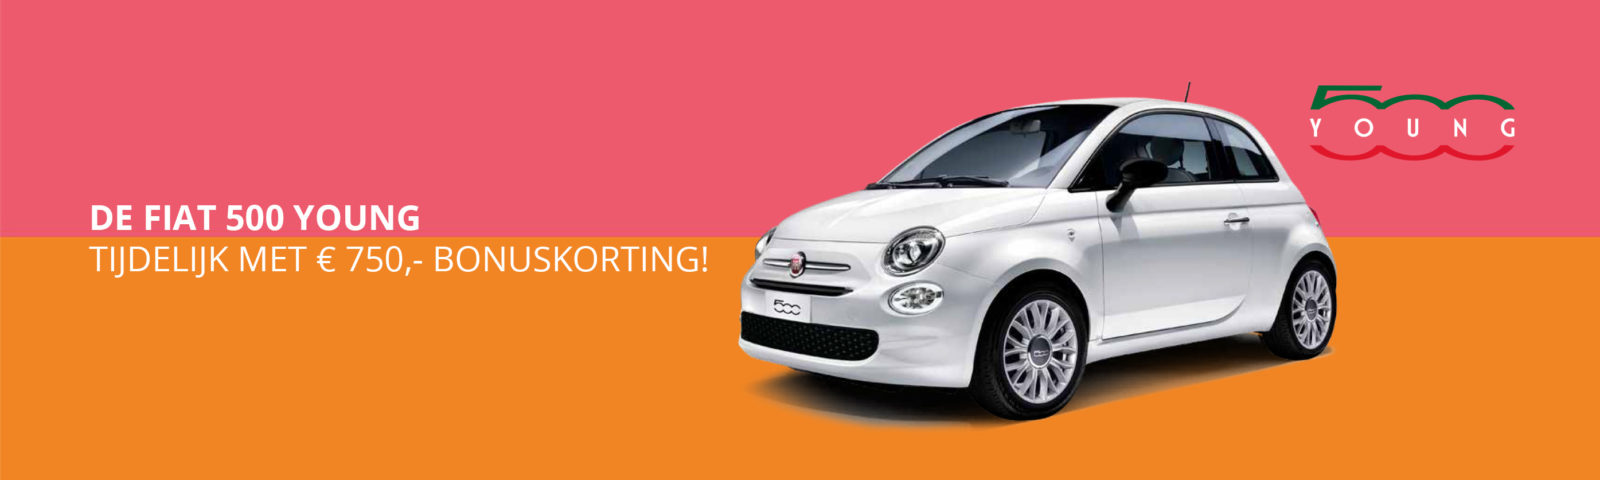 Fiat 500 Young